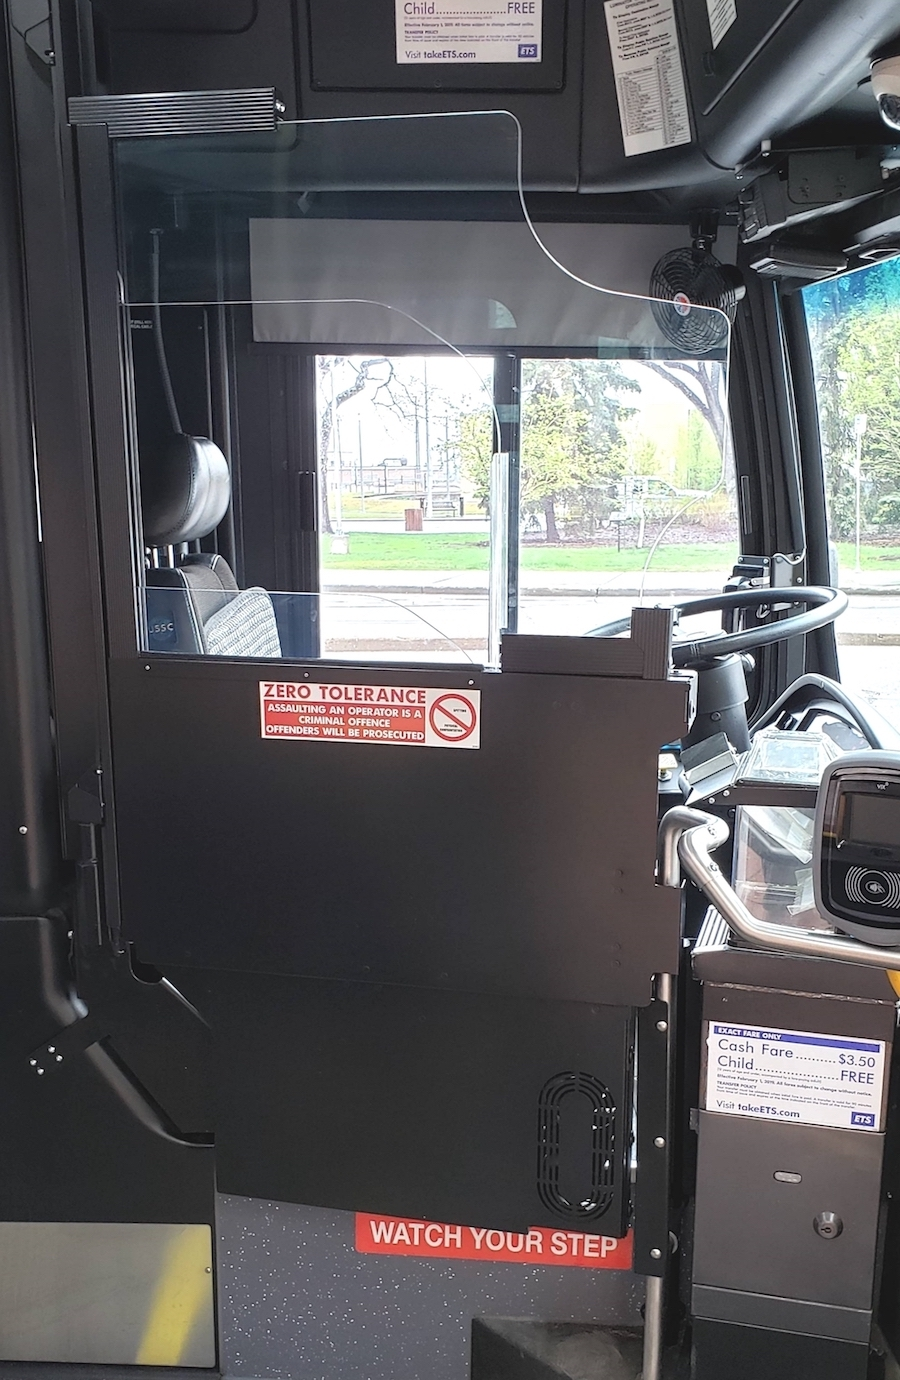 ETS installs Vapor operator safety doors on bus fleet